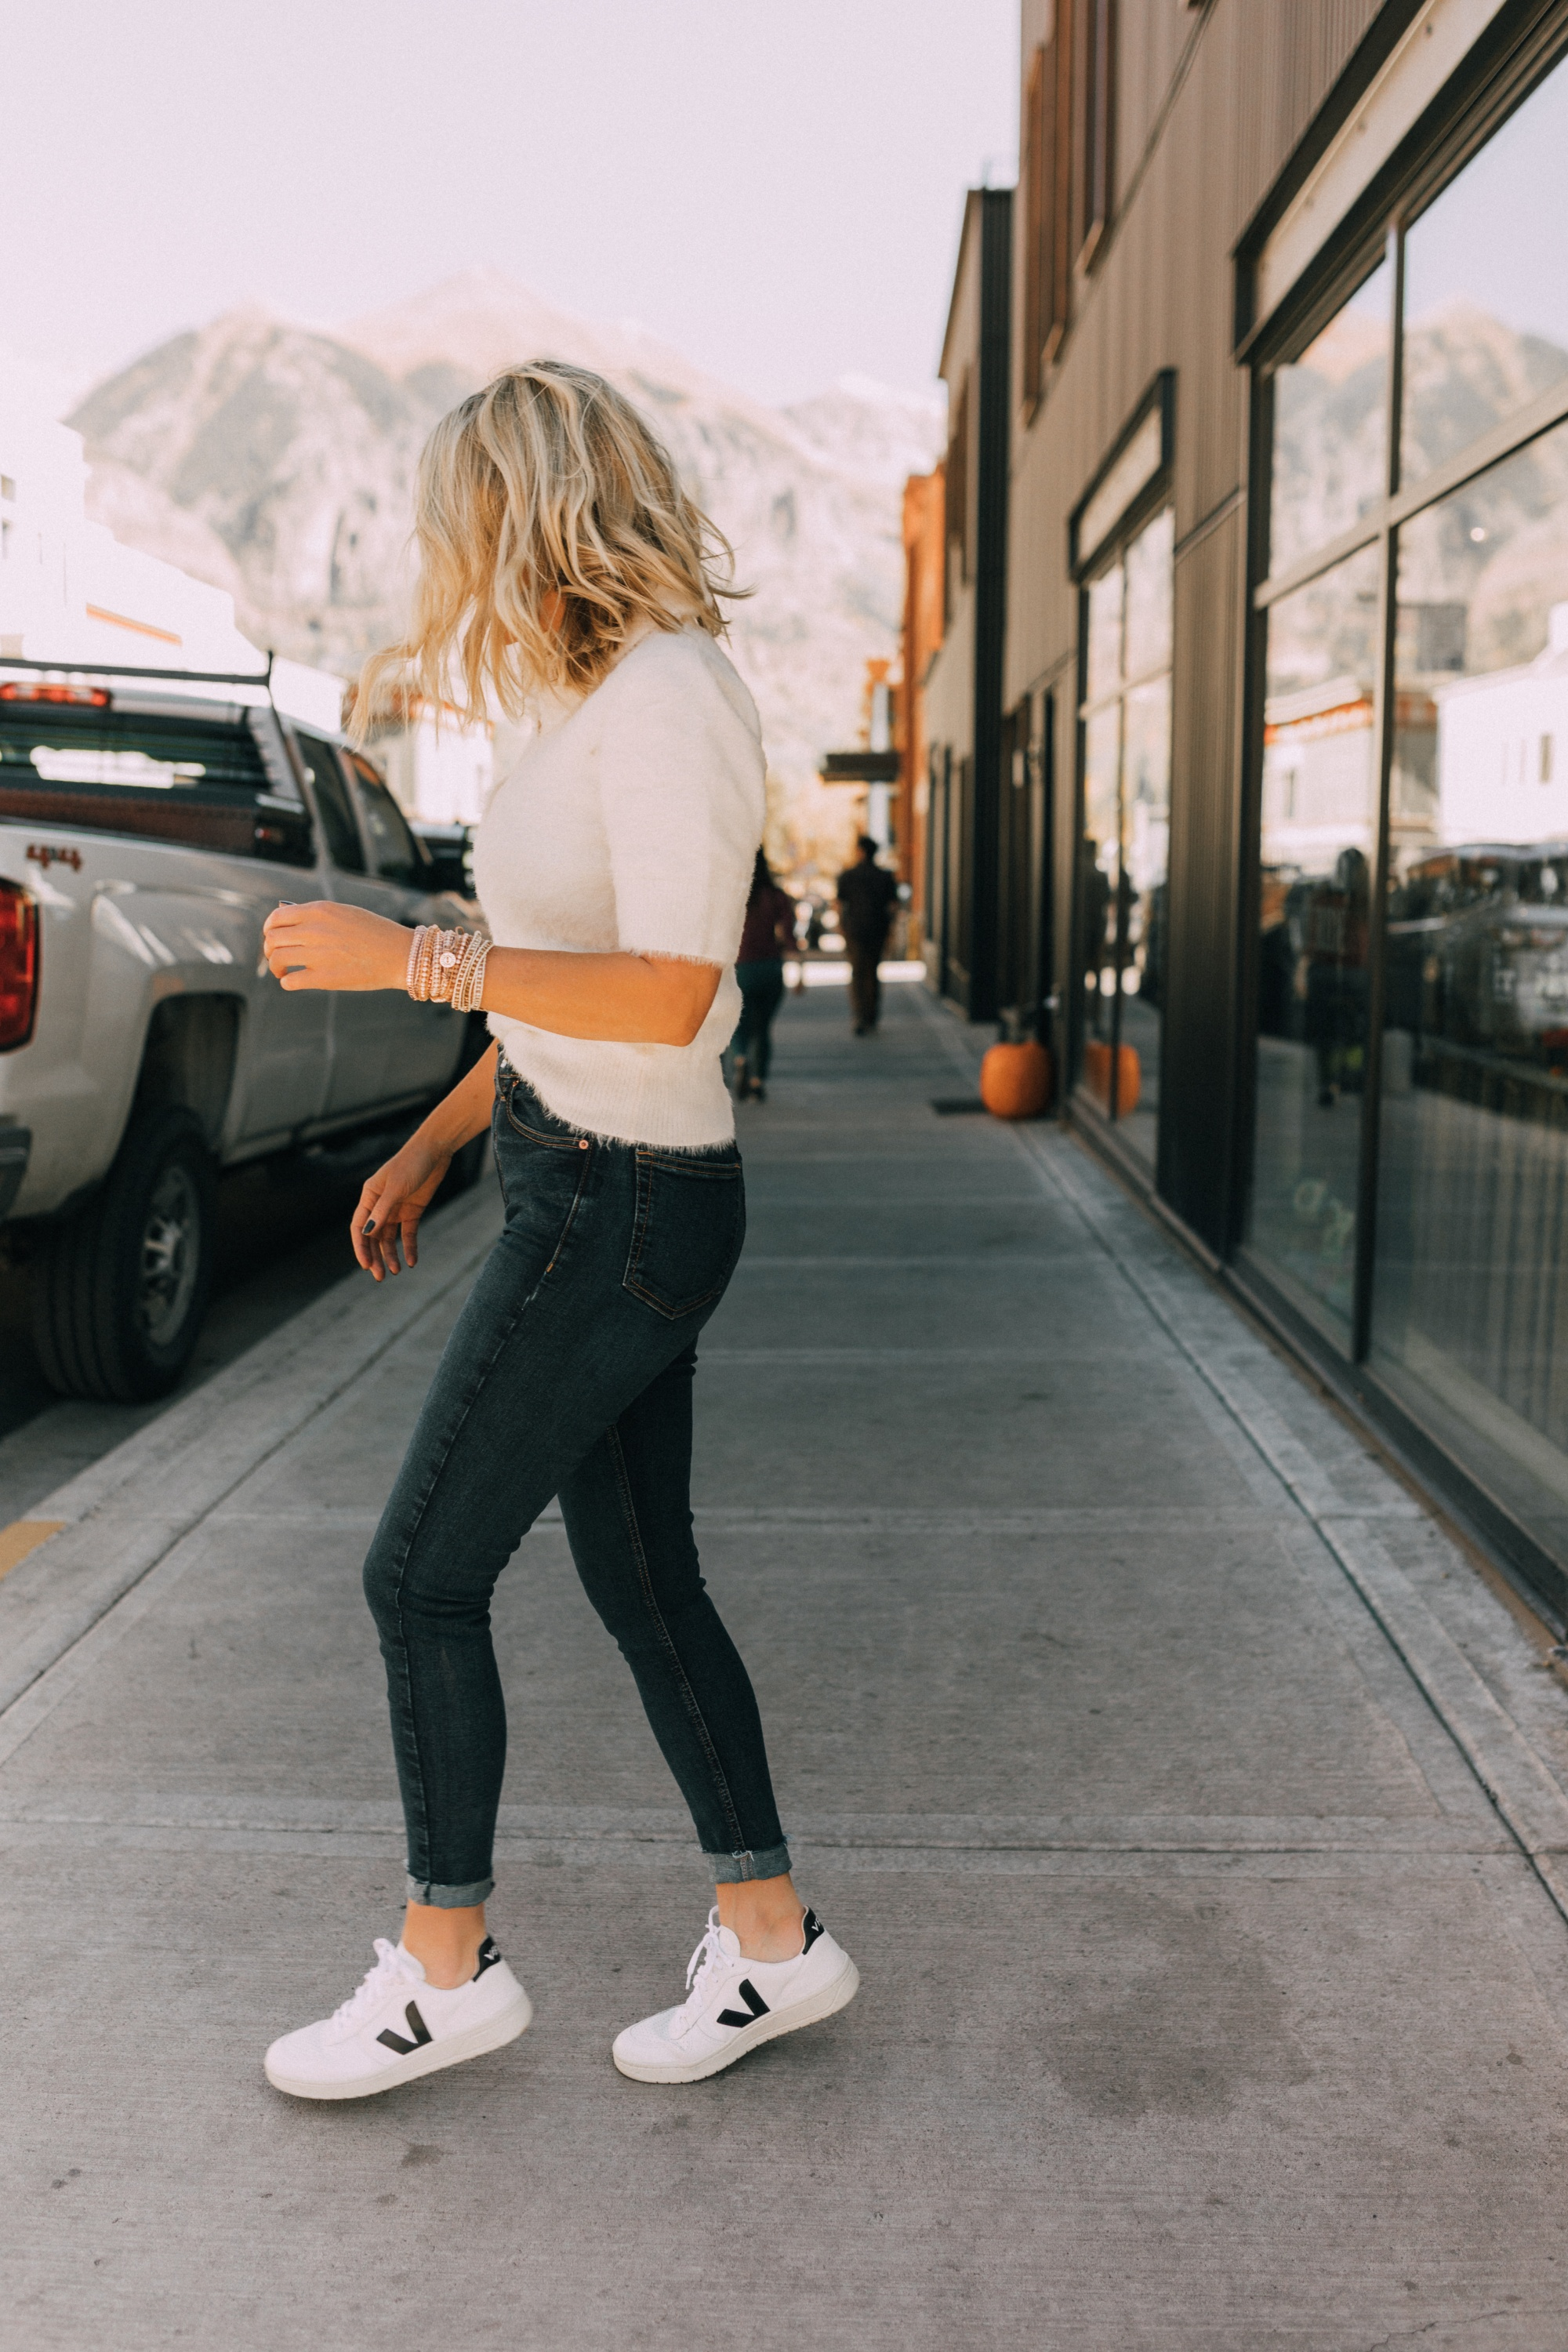 Fall Jewelry, Fashion blogger Erin Busbee of BusbeeStyle.com wearing three wrap bracelets by Victoria Emerson with dark wash skinny jeans, white fuzzy polo sweater, and Veja sneakers in Telluride, CO